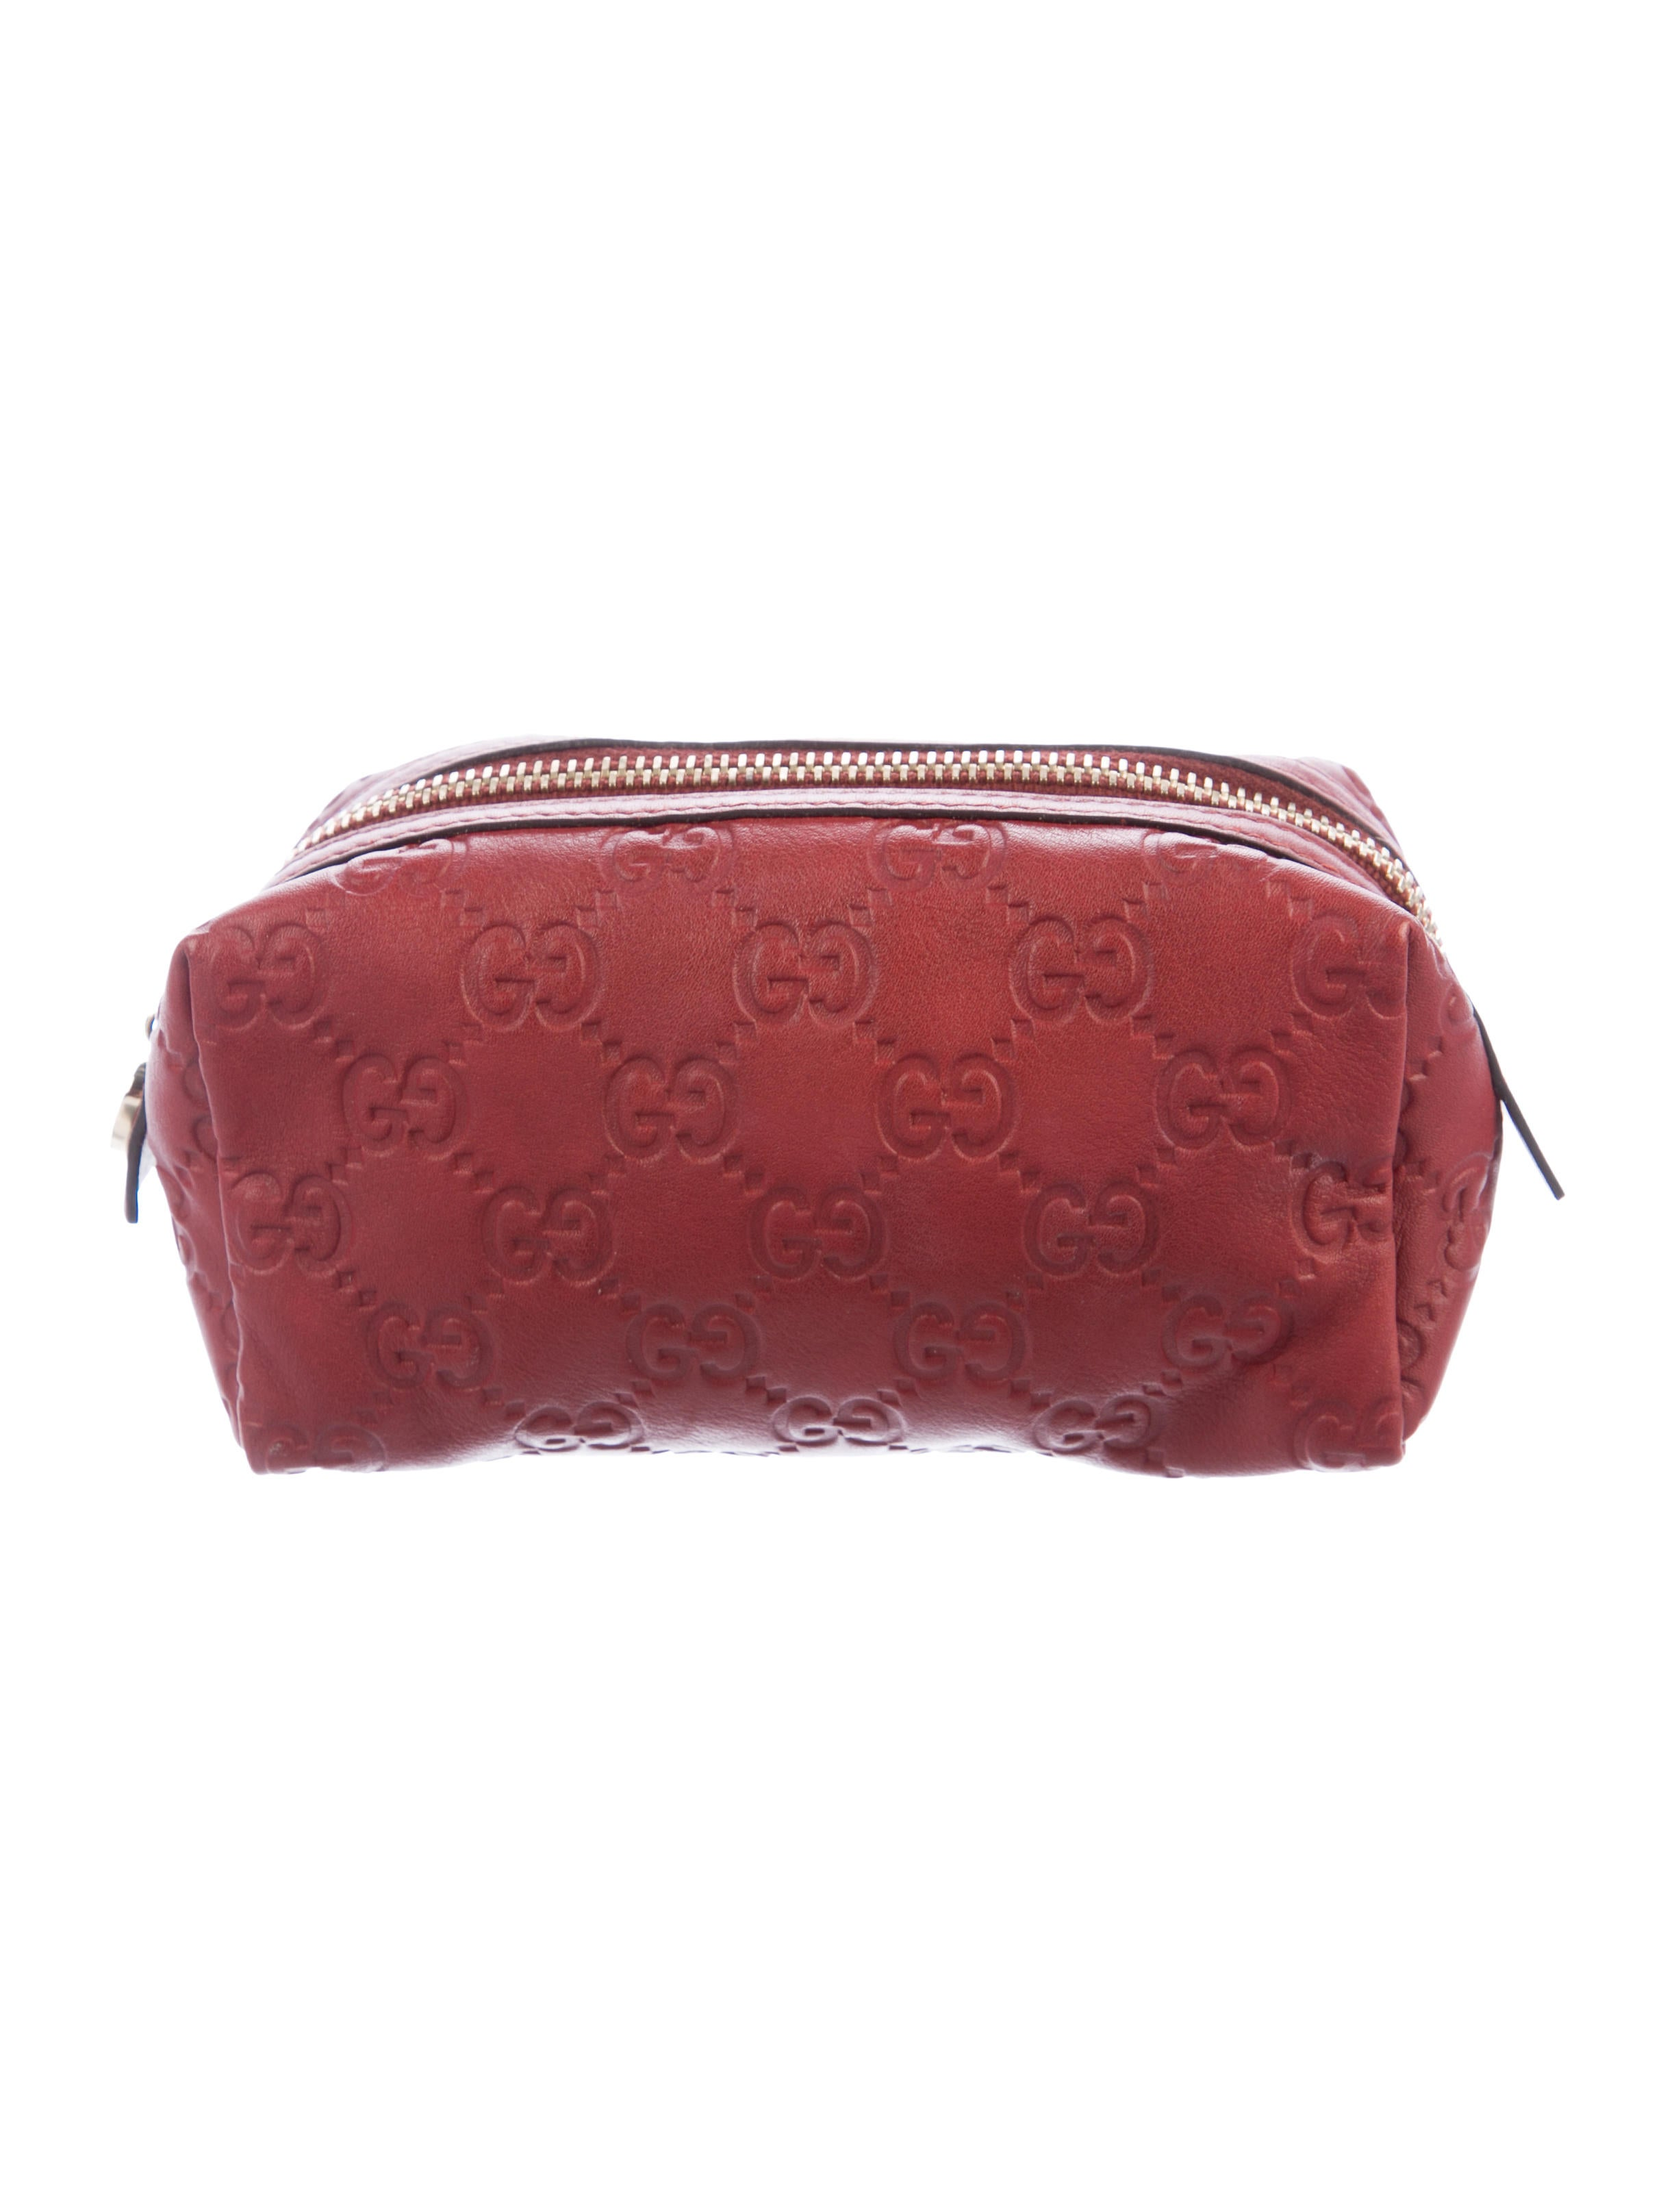 e2ca1e9948a03 Gucci Cosmetic Bags | The RealReal